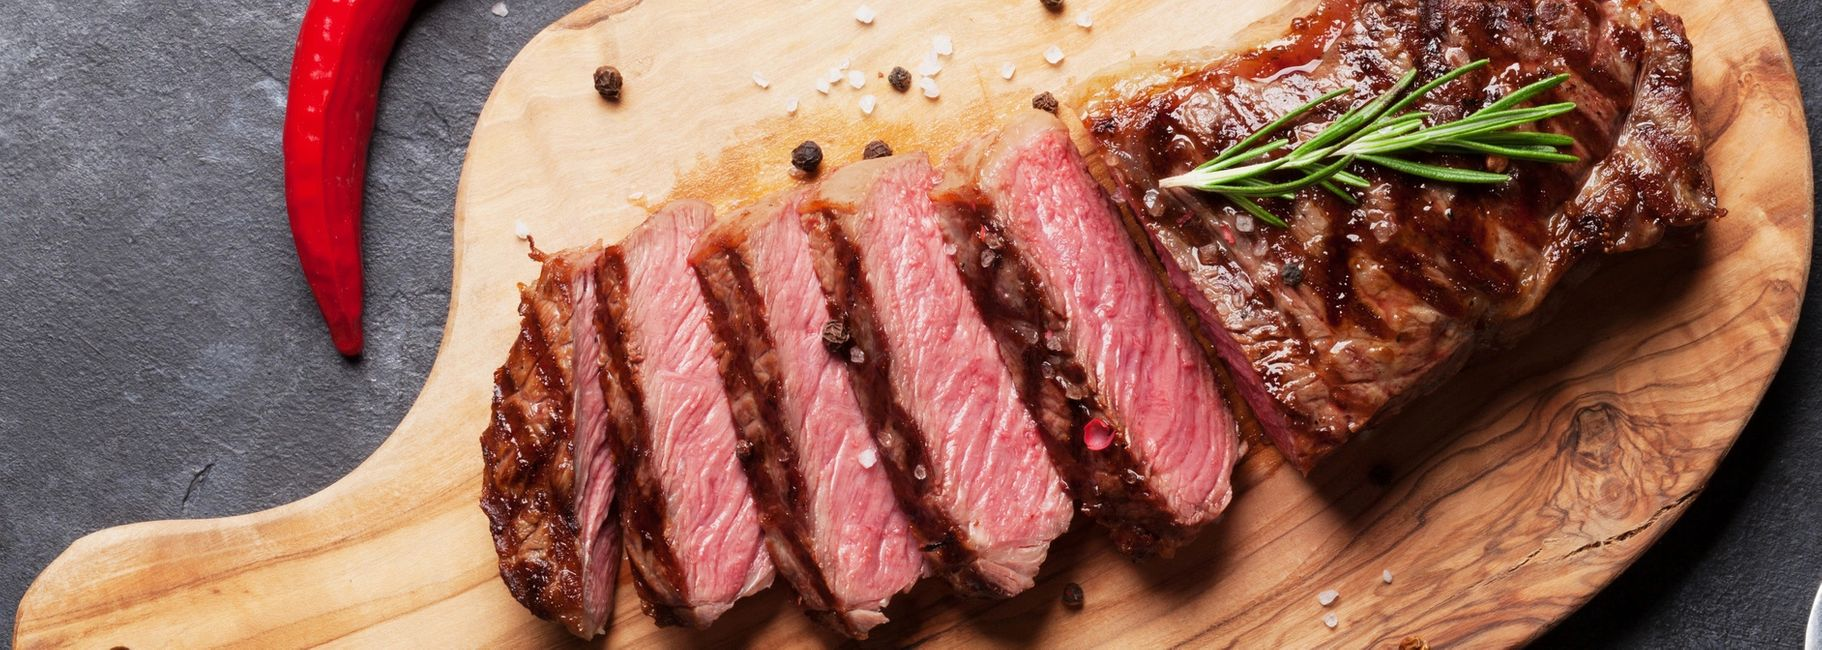 Lemon & Garlic Marinated Flat Iron Steak